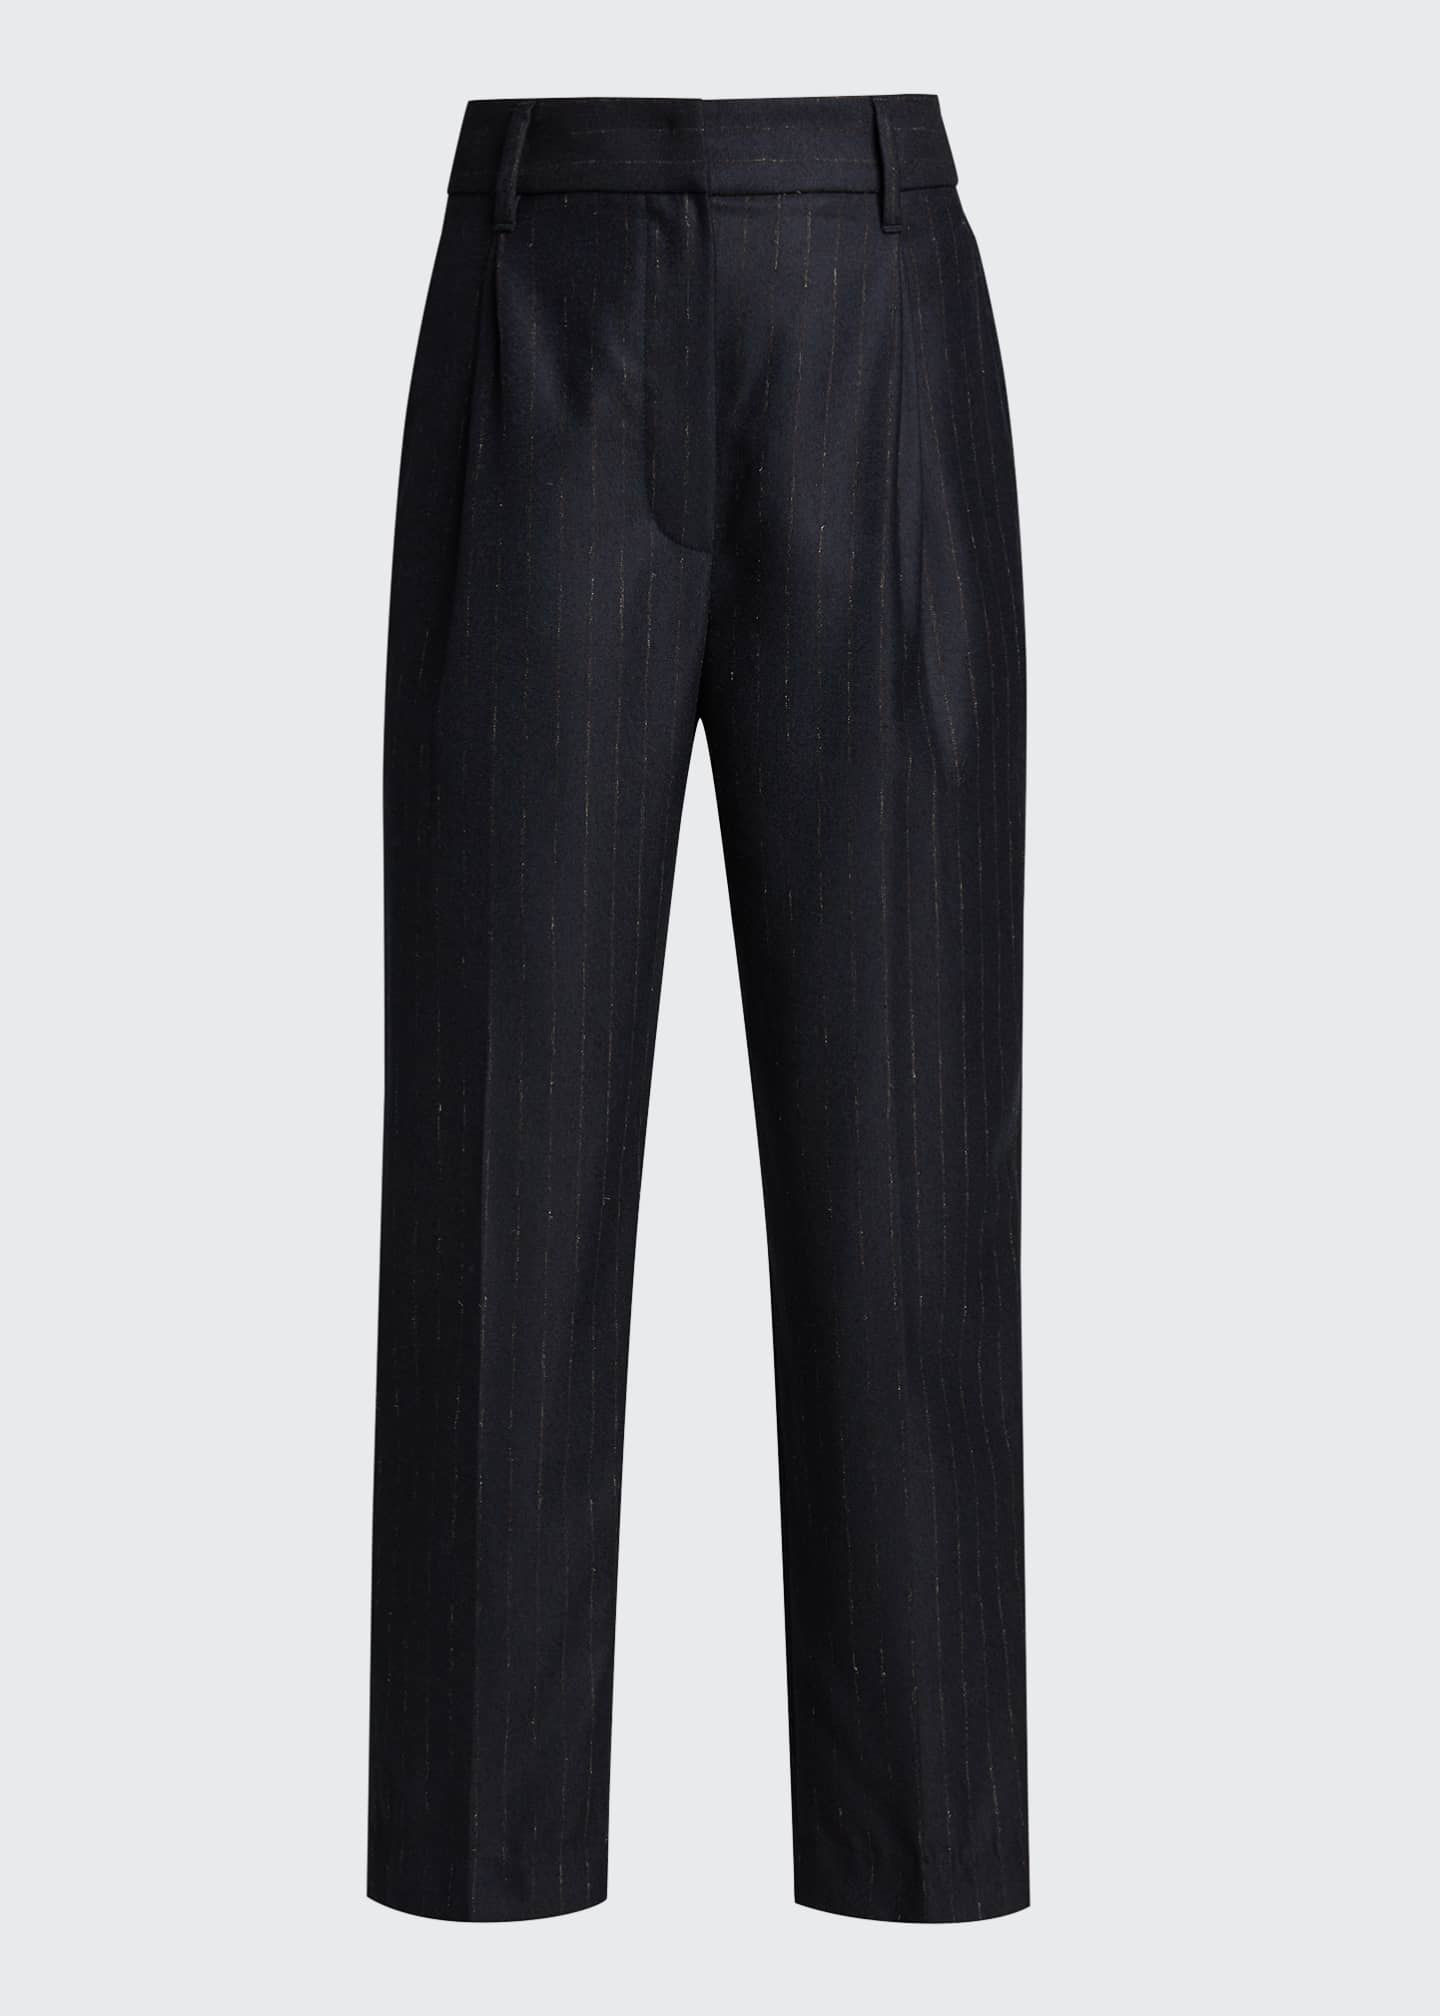 Image 5 of 5: Pinstripe Wool Pleated Cropped Trousers